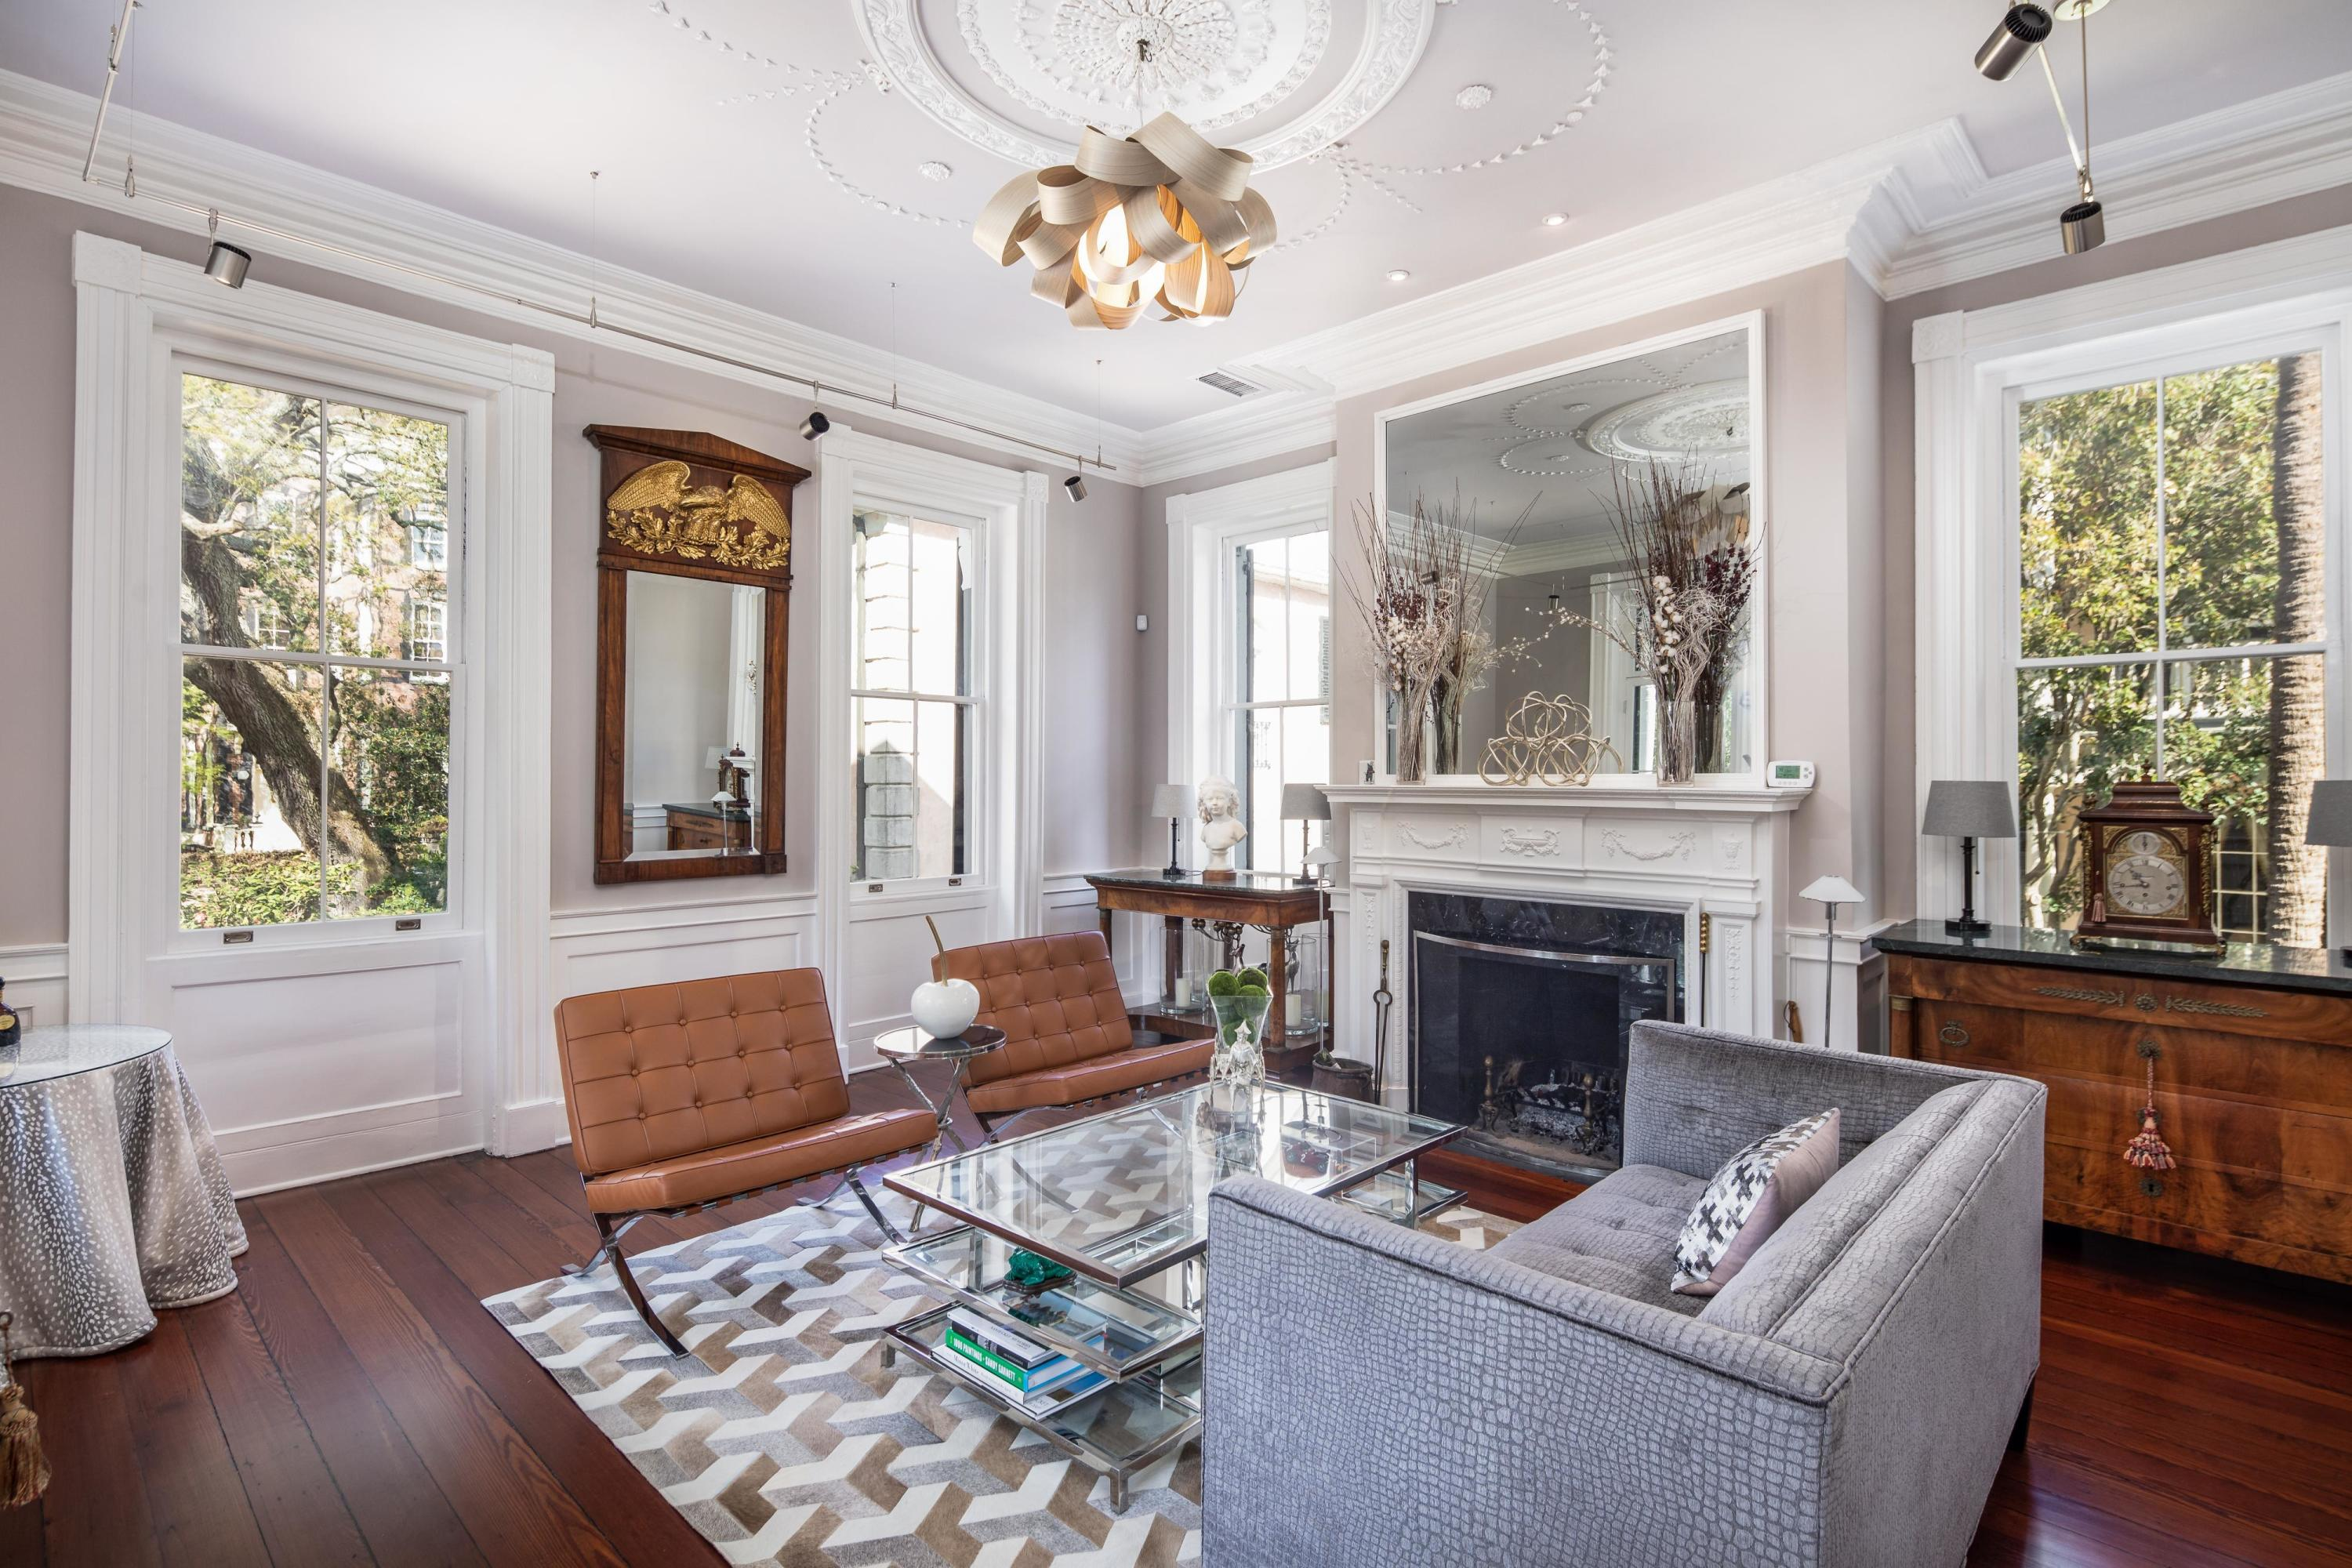 South of Broad Homes For Sale - 18 Church, Charleston, SC - 97